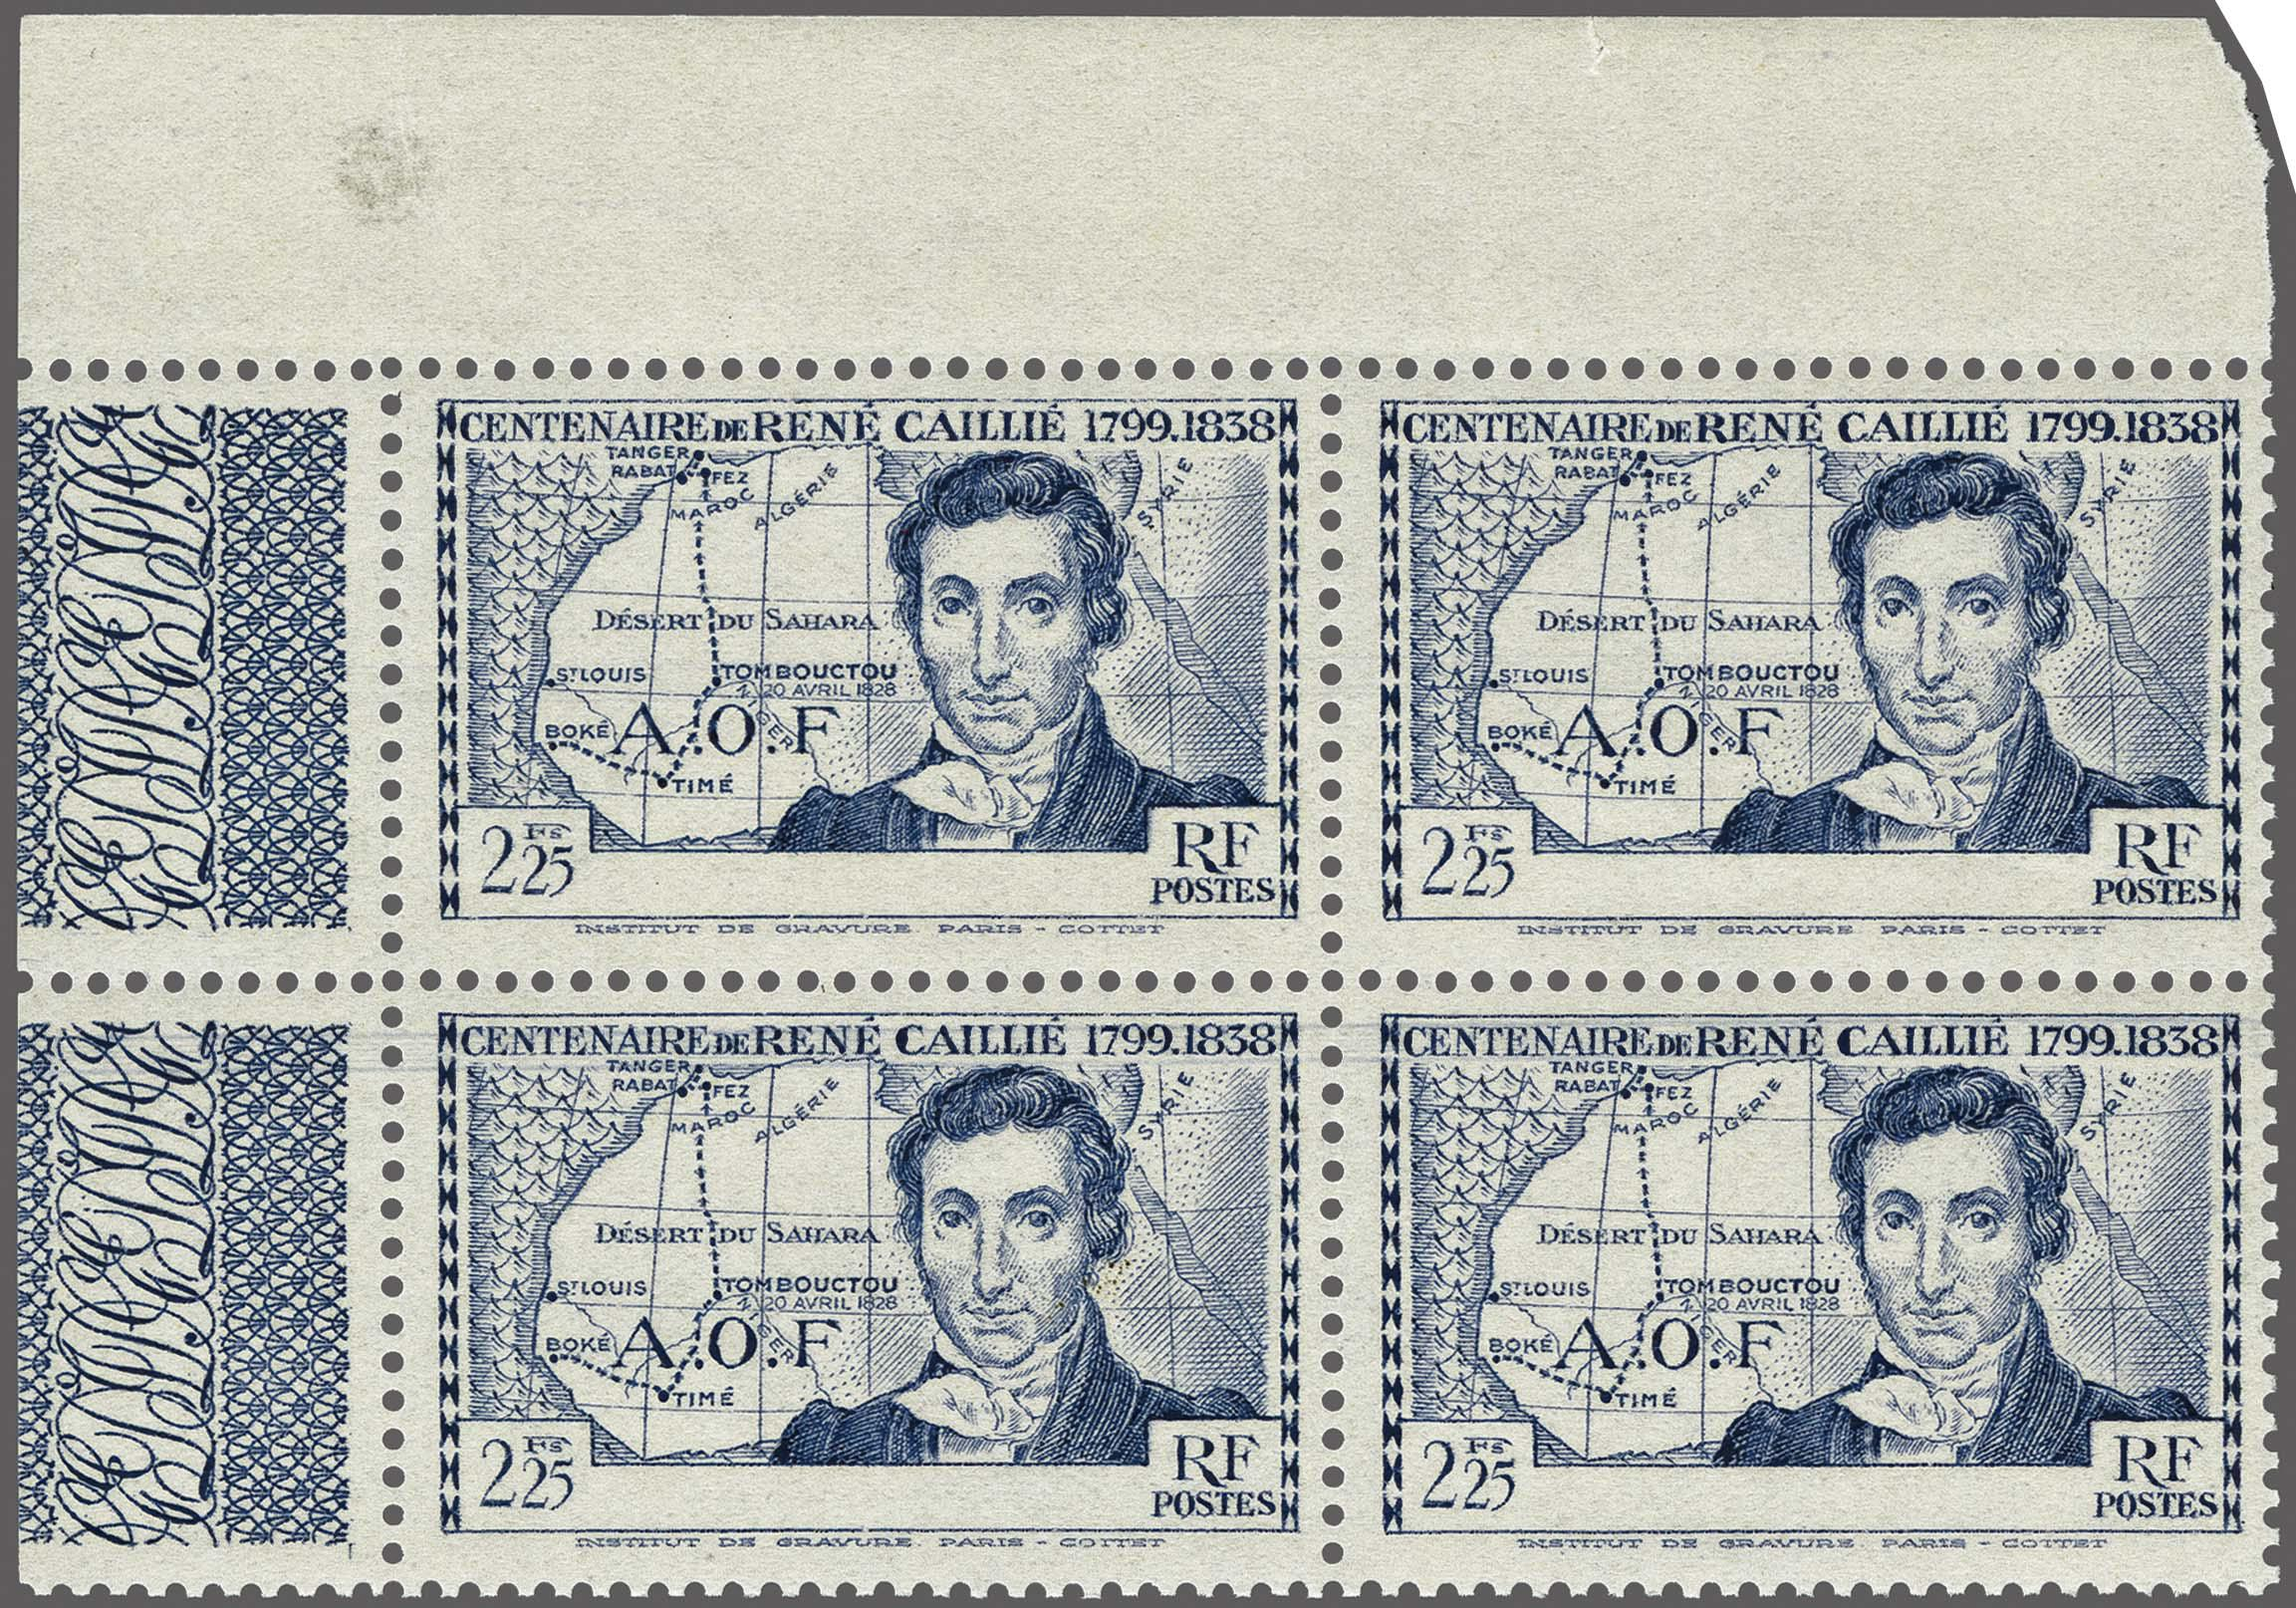 Lot 107 - France and former colonies ivory coast -  Corinphila Veilingen Auction 250-253 - Day 1 - Foreign countries